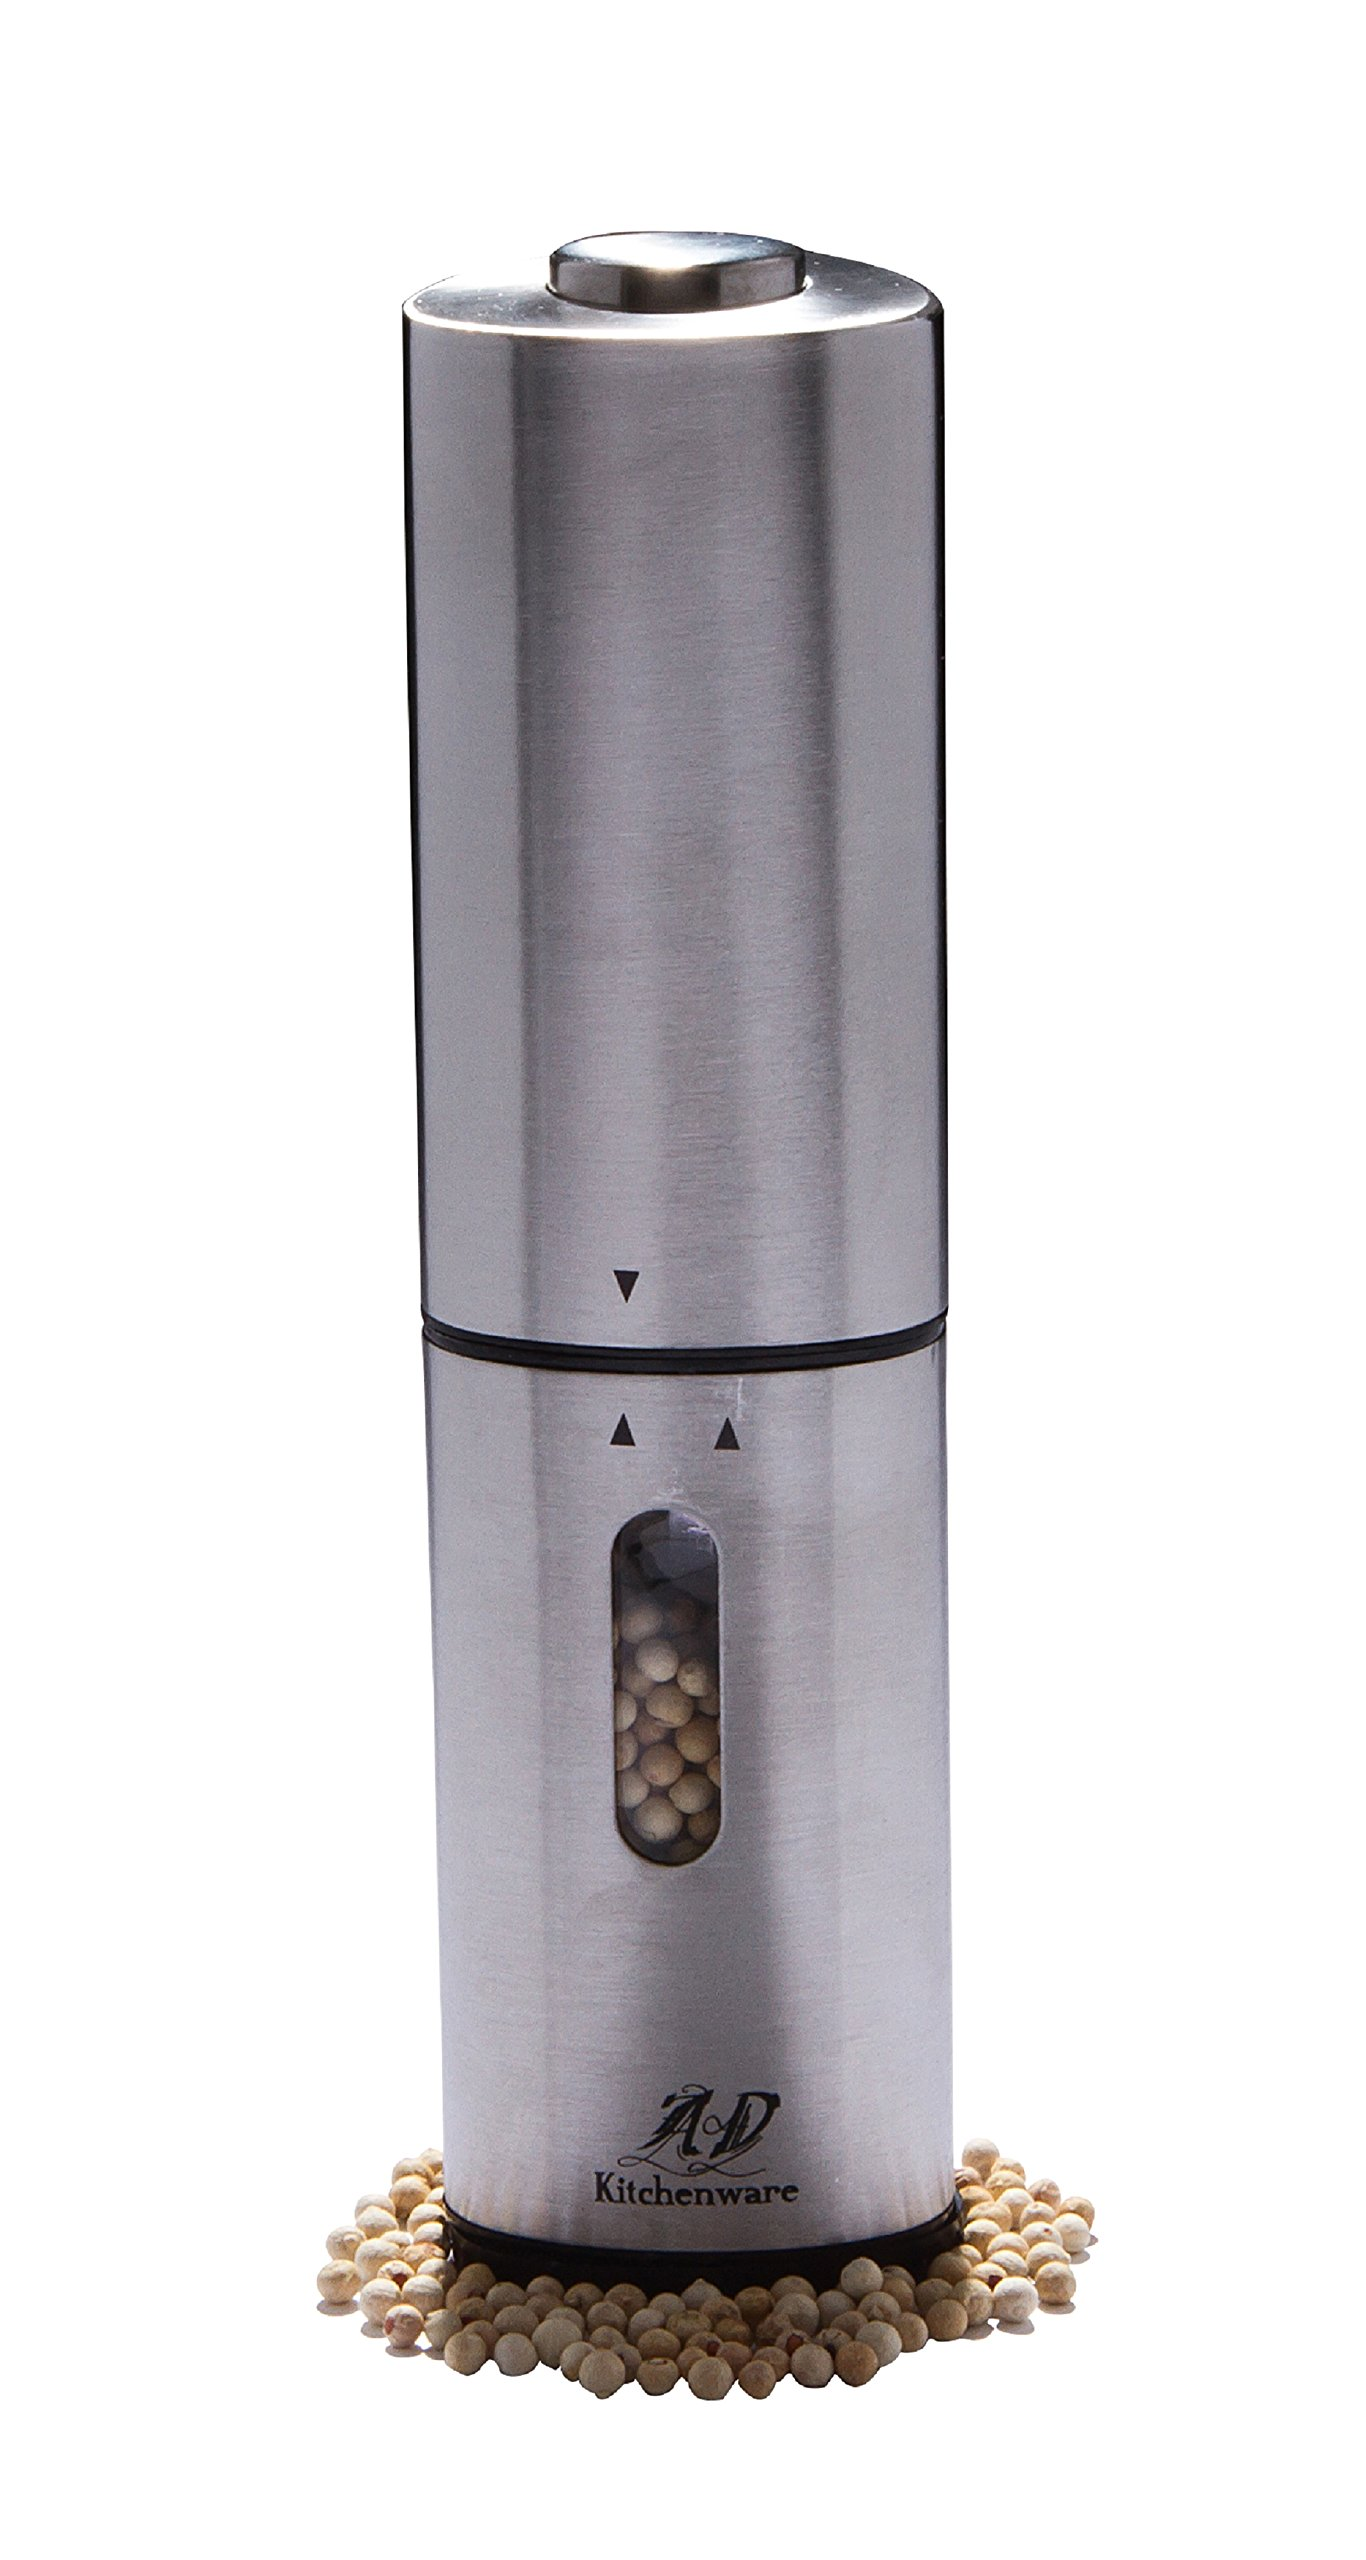 AD Kitchenware Electric Pepper Grinder  image